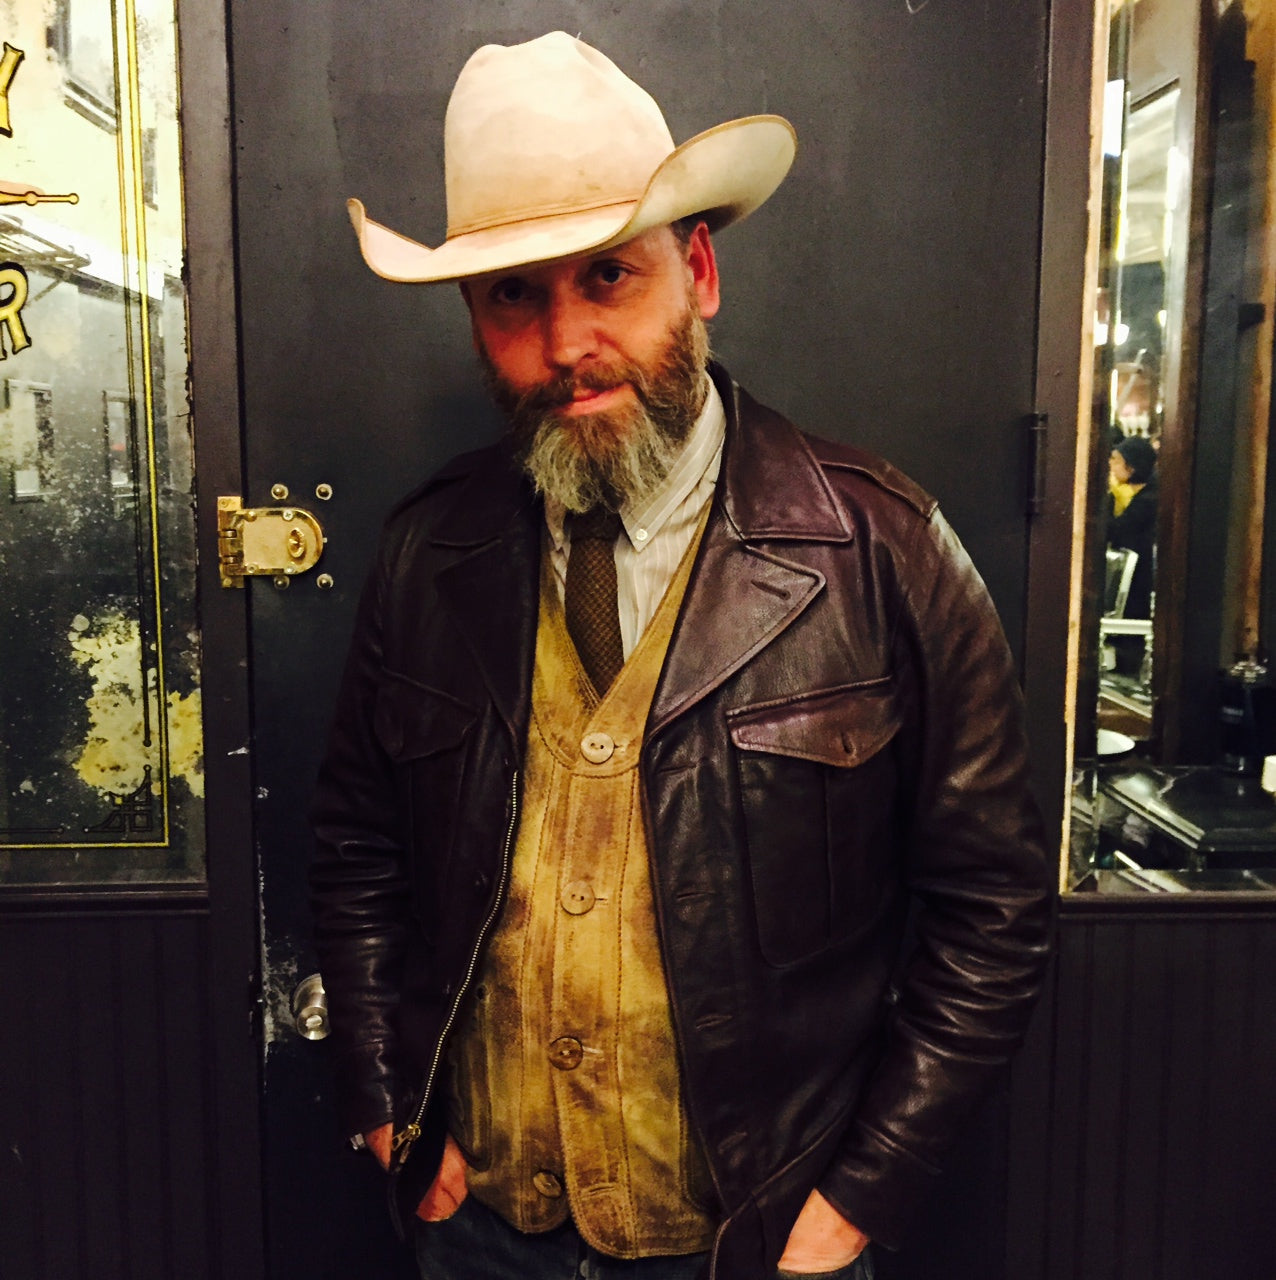 Russell Manley, owner of Ludlow Blunt, looking fantastic in head to toe RRL - brooklyn vintage men's style